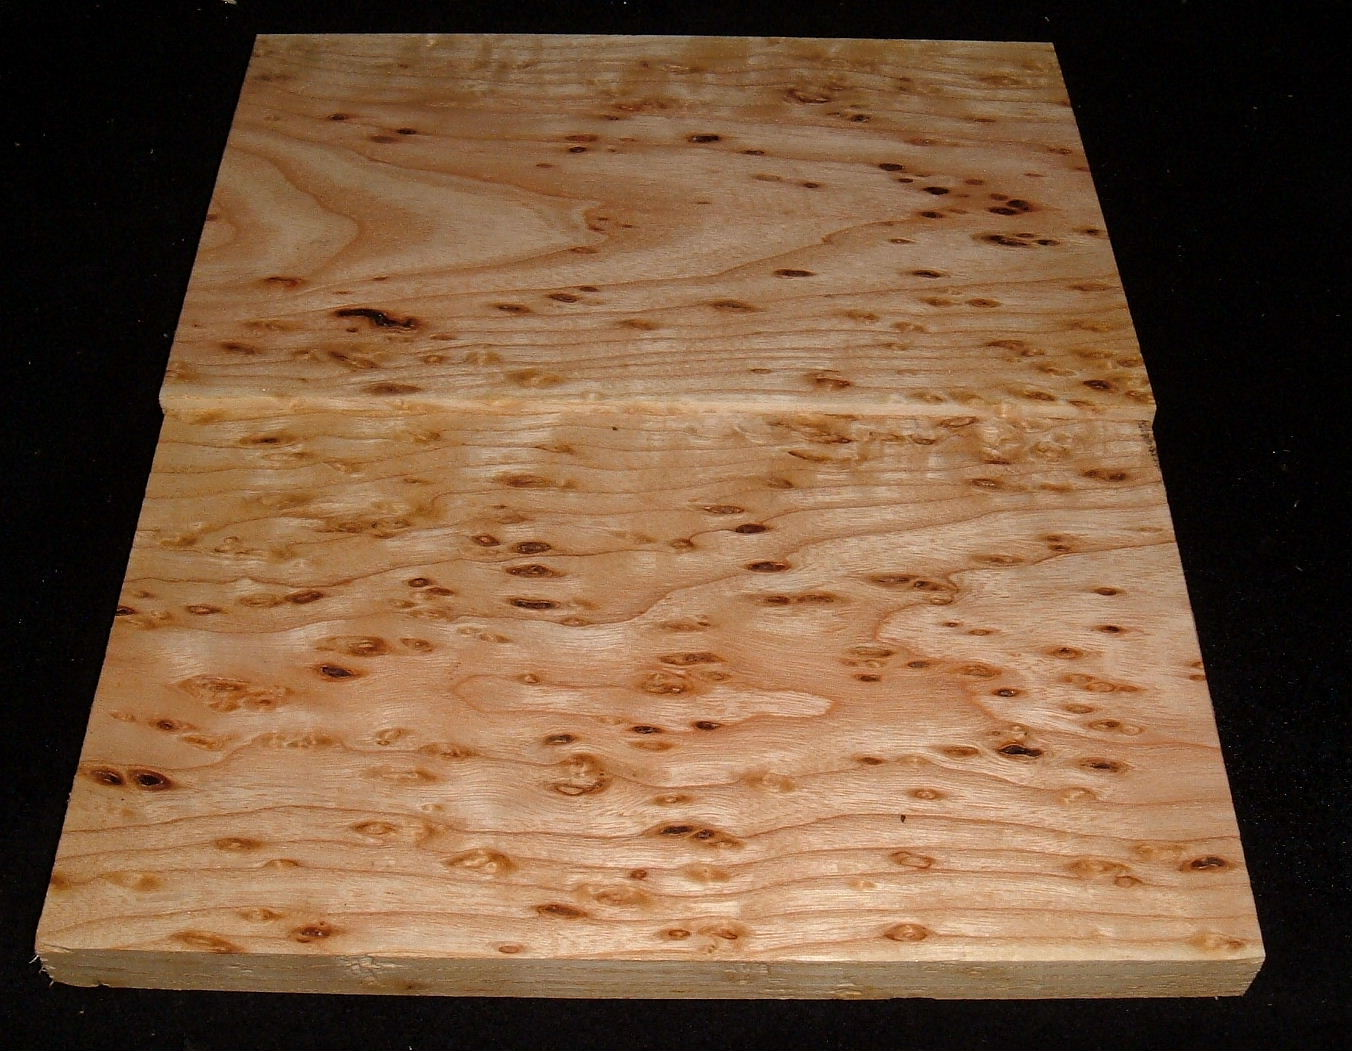 BIAS-2760n, 3/4x6-1/2x11, 15/16x6-7/8x11, Bark Included Ash